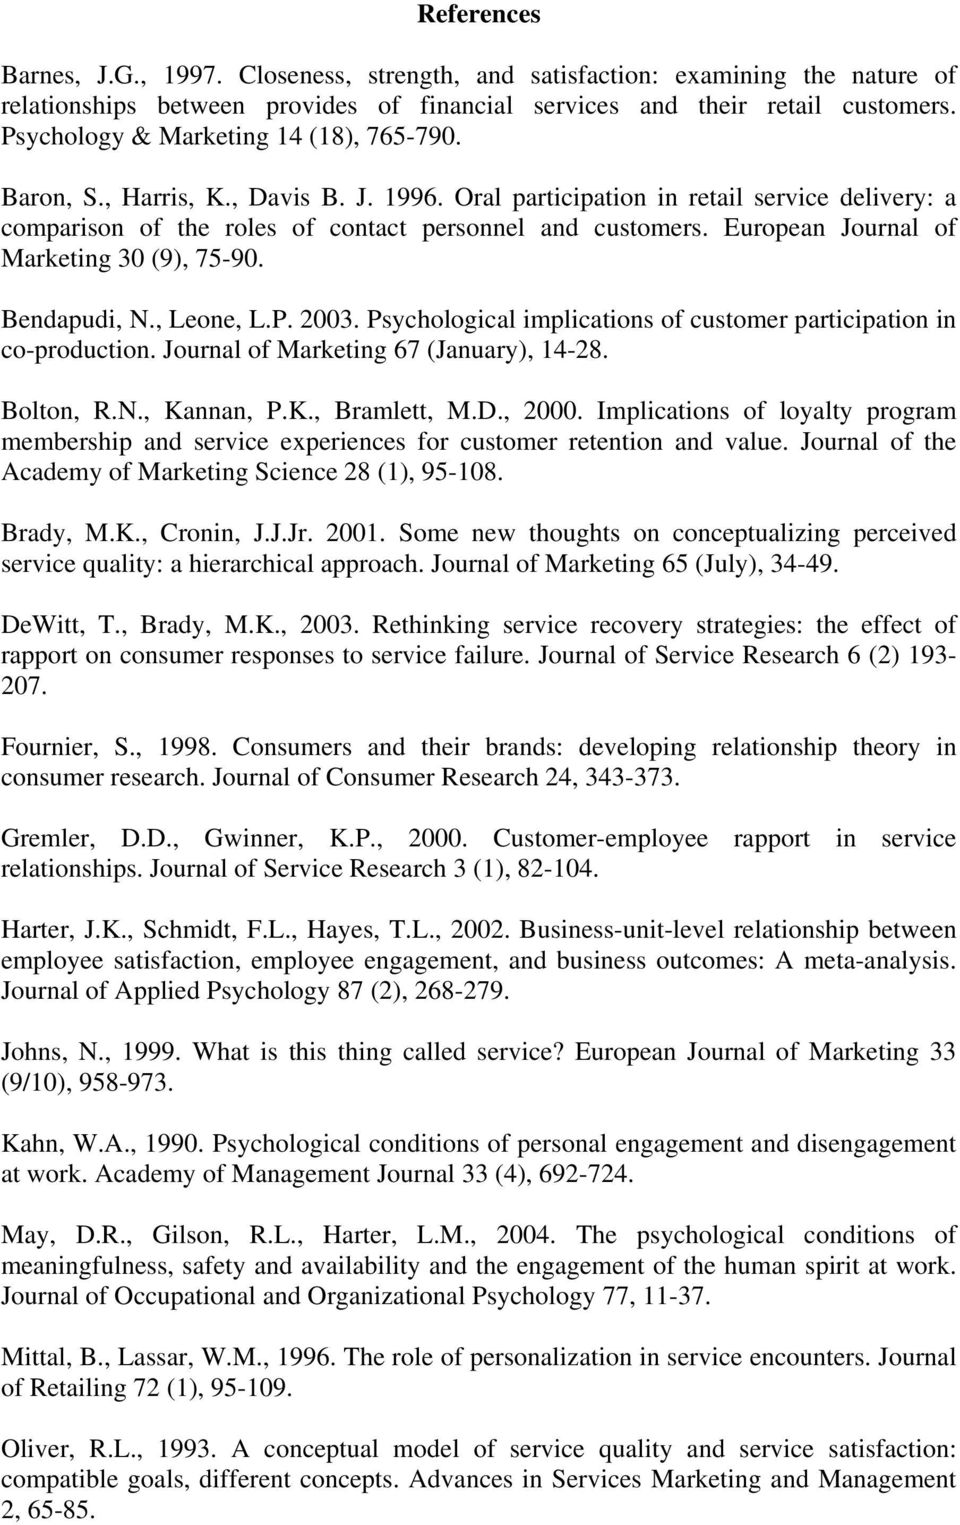 European Journal of Marketing 30 (9), 75-90. Bendapudi, N., Leone, L.P. 2003. Psychological implications of customer participation in co-production. Journal of Marketing 67 (January), 14-28.